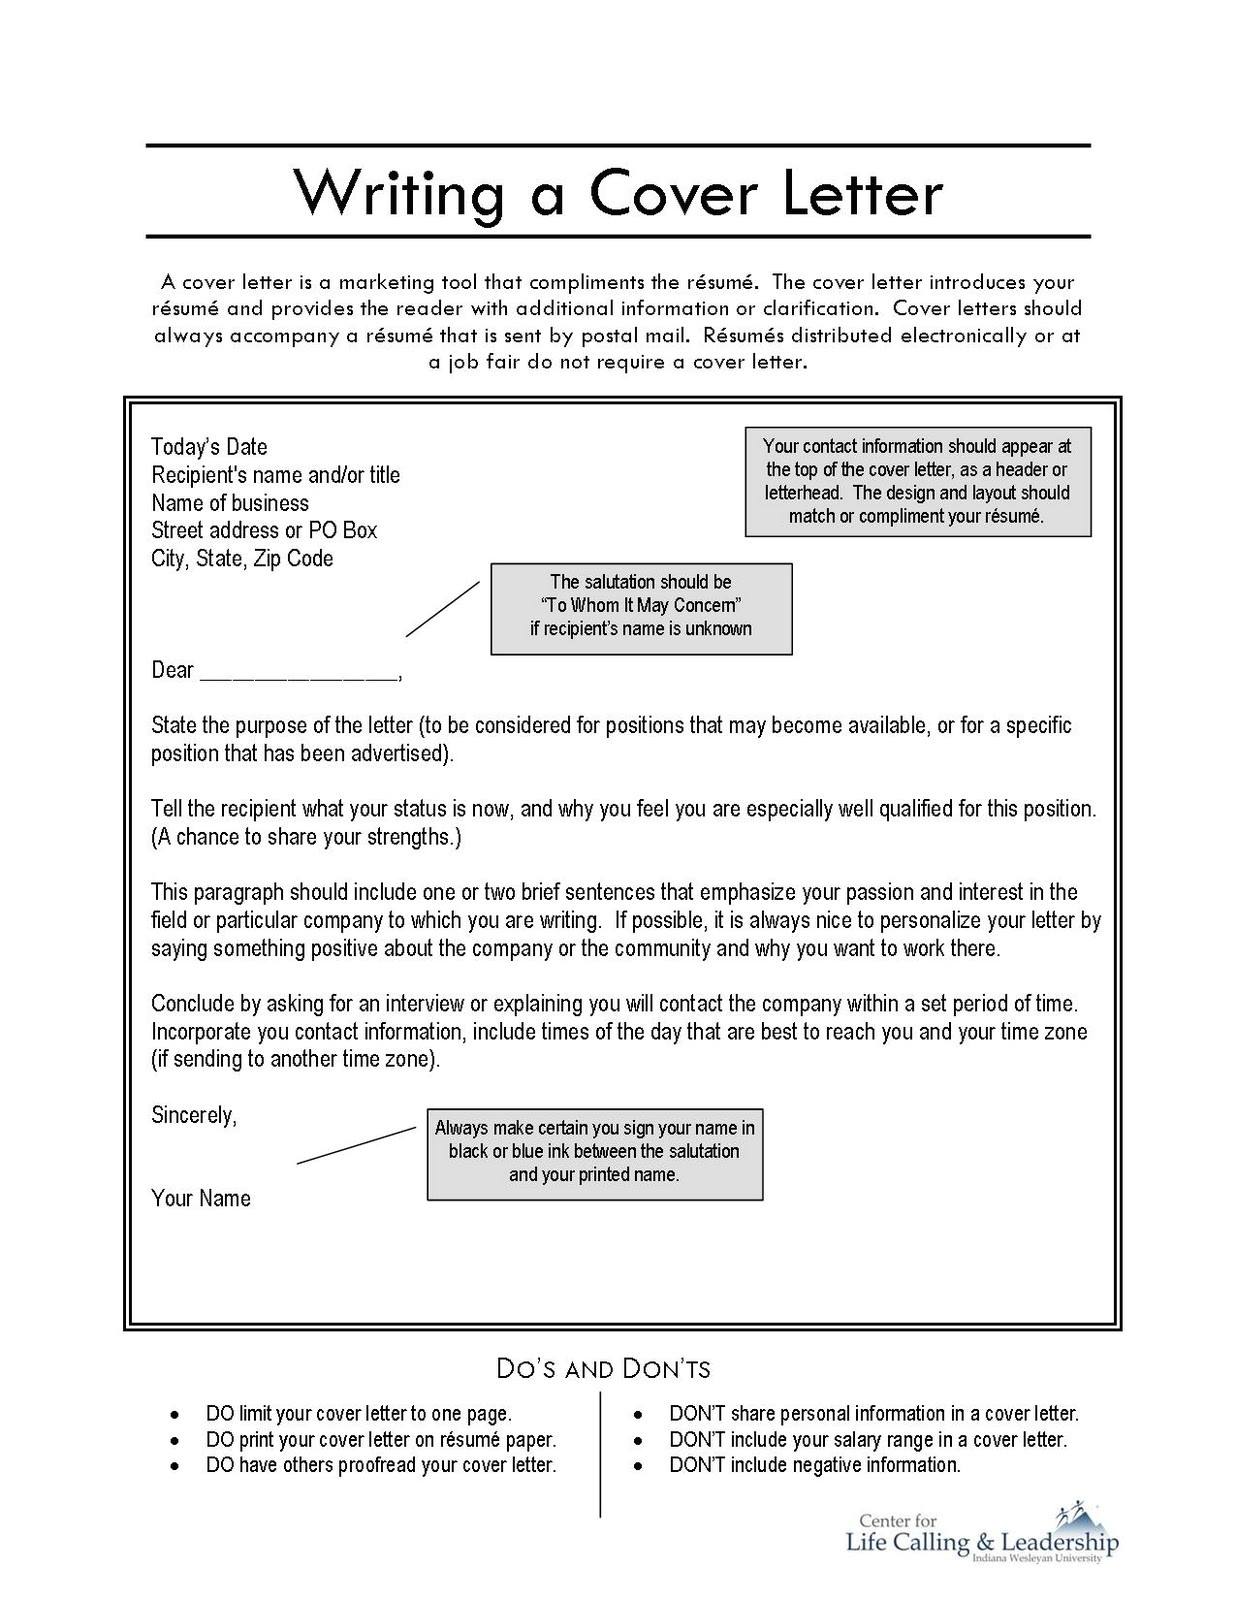 what should be included in a resume cover letter beautiful what does a cover letter for a resume look like images cover